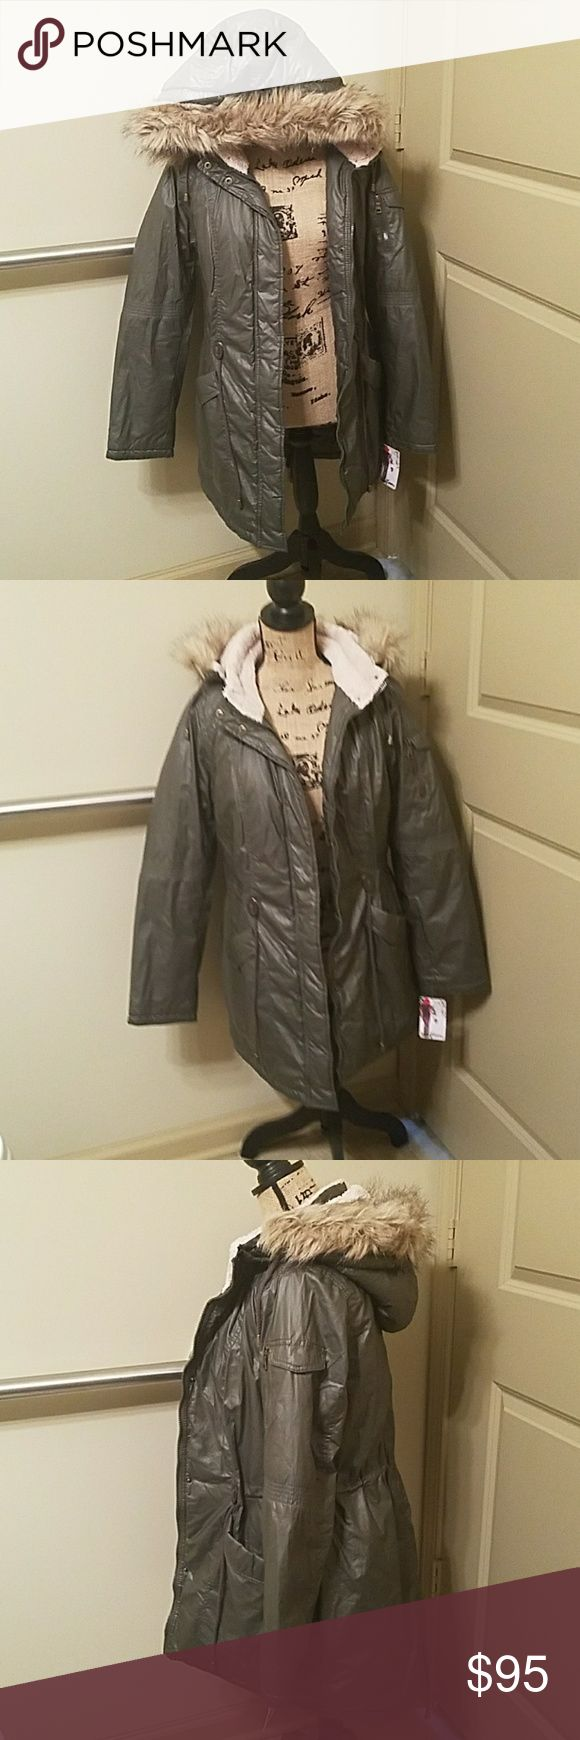 NWT women's  olive green winter coat  SZ M NWT  women's olive  green  winter coat  SZ M  with multiple  pockets   very warm  and comfy  brand  wildflower Wildflower Jackets & Coats Puffers